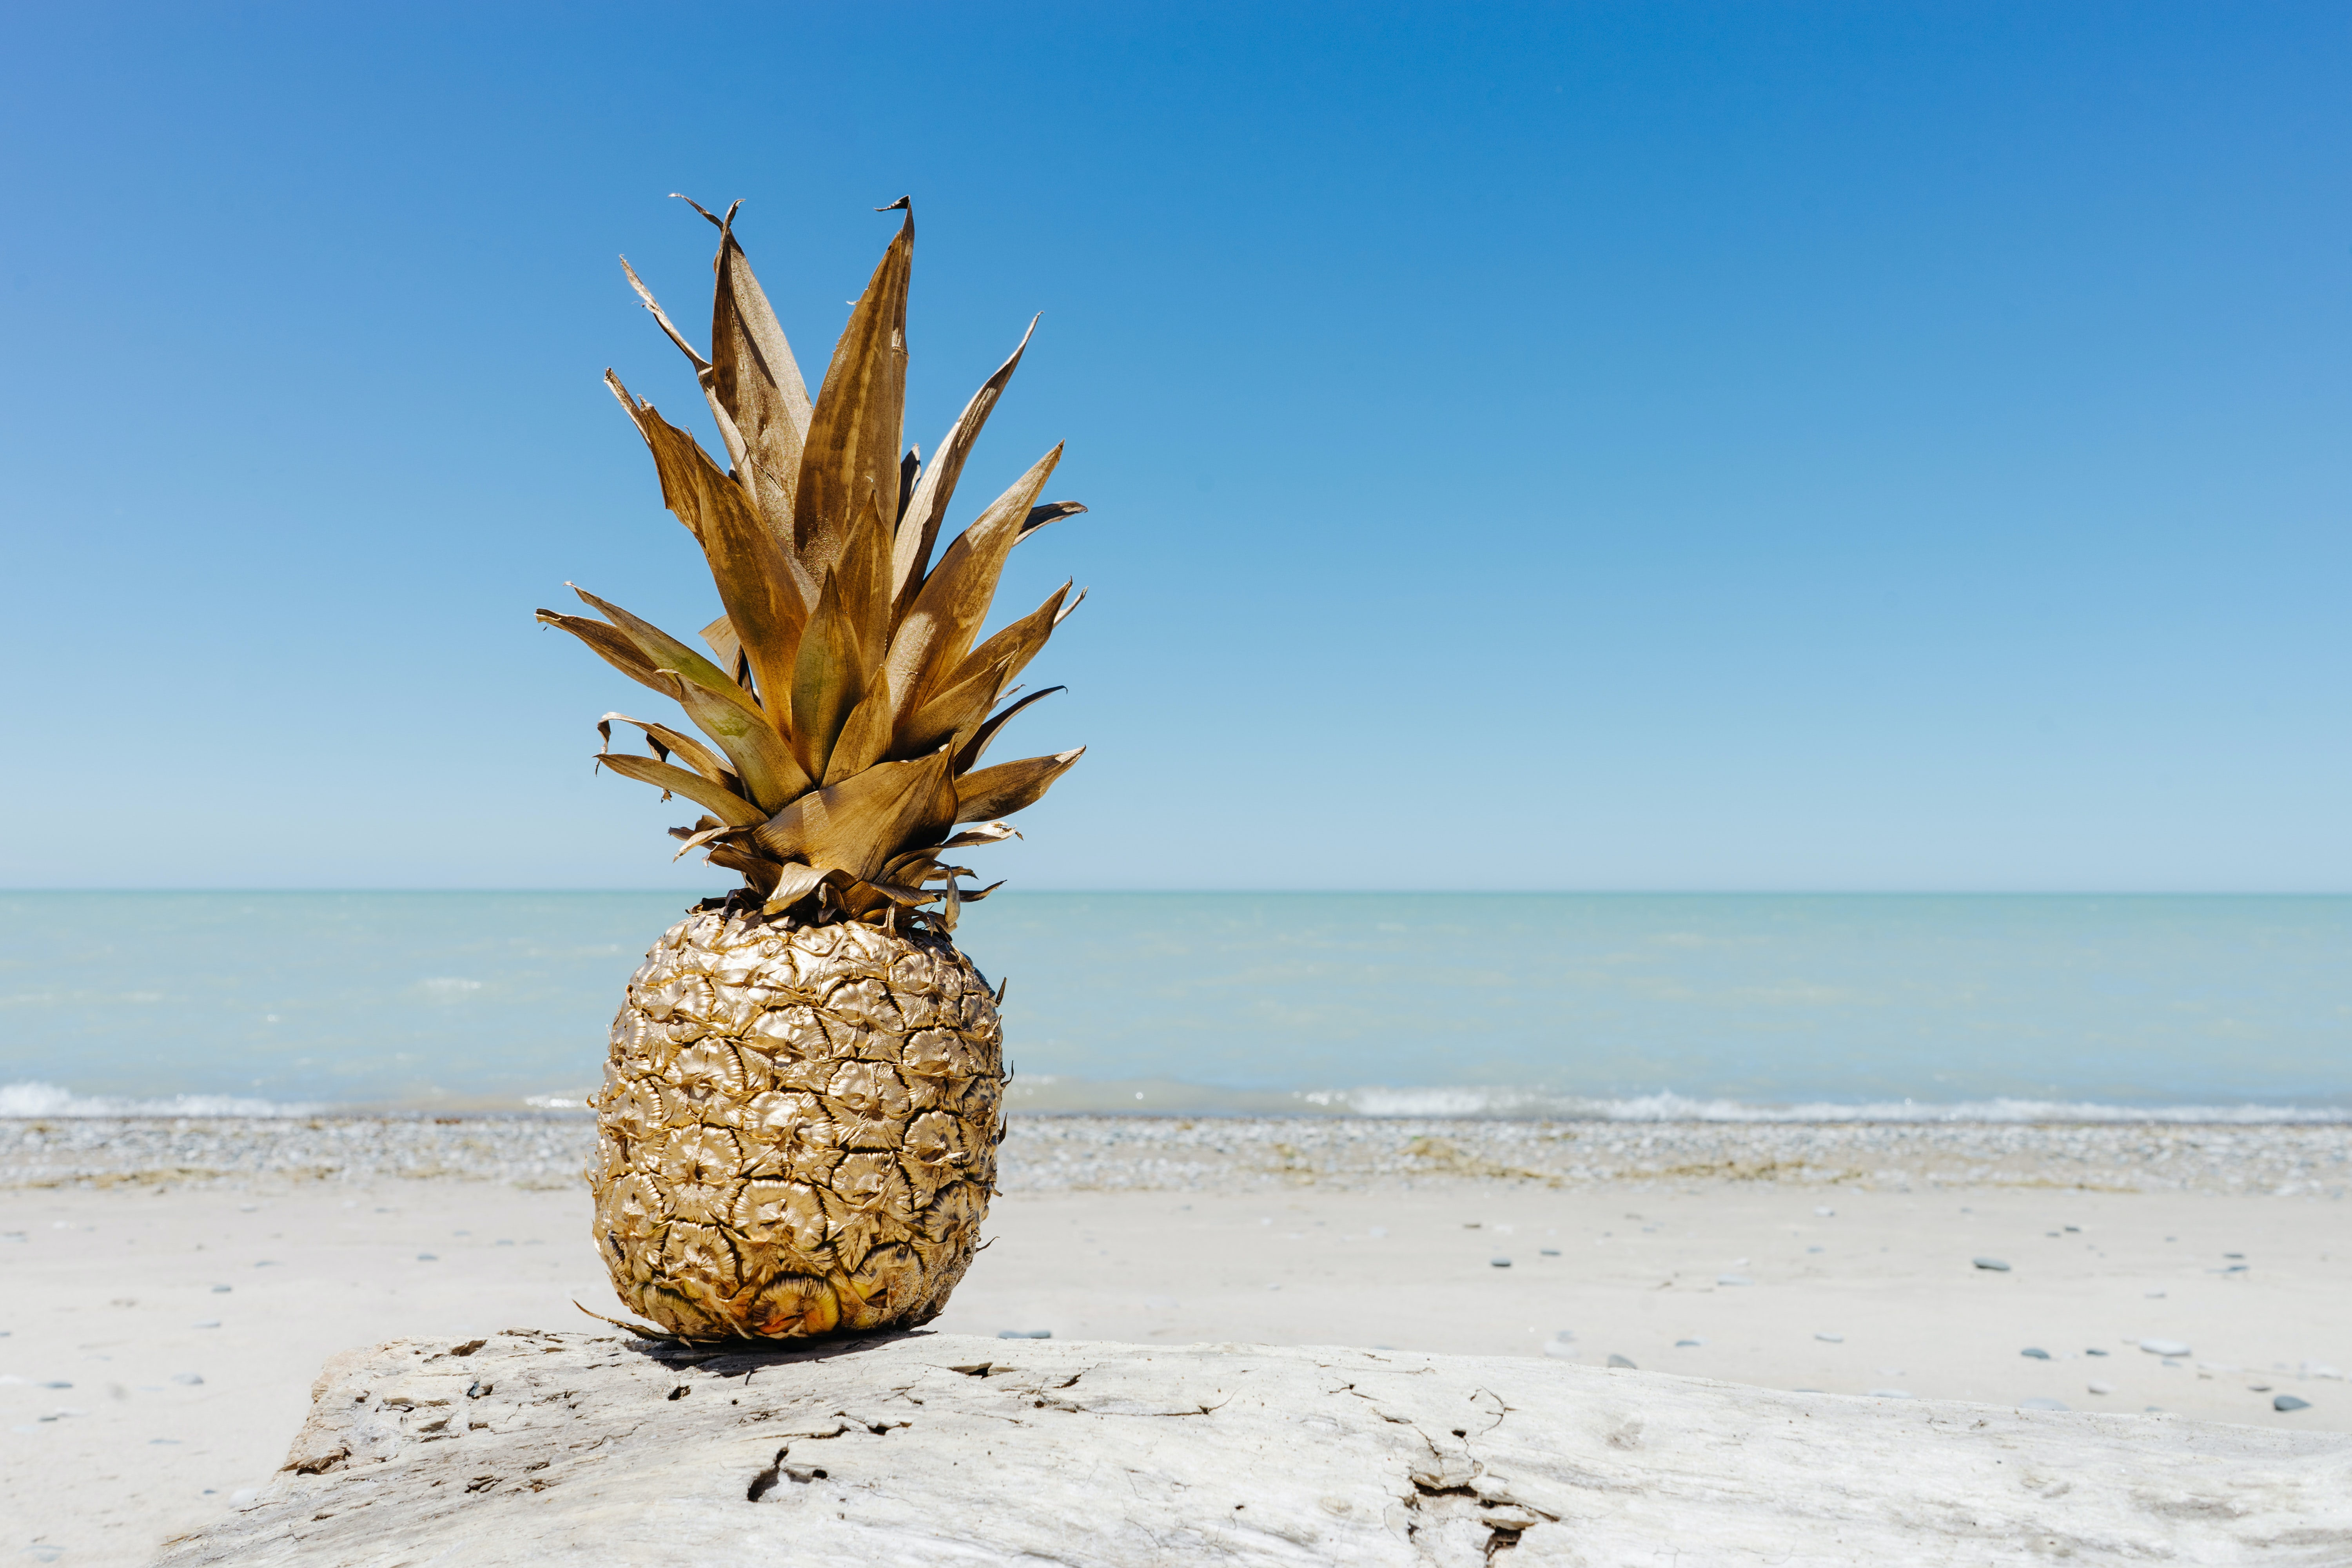 A single pineapple on the beach.